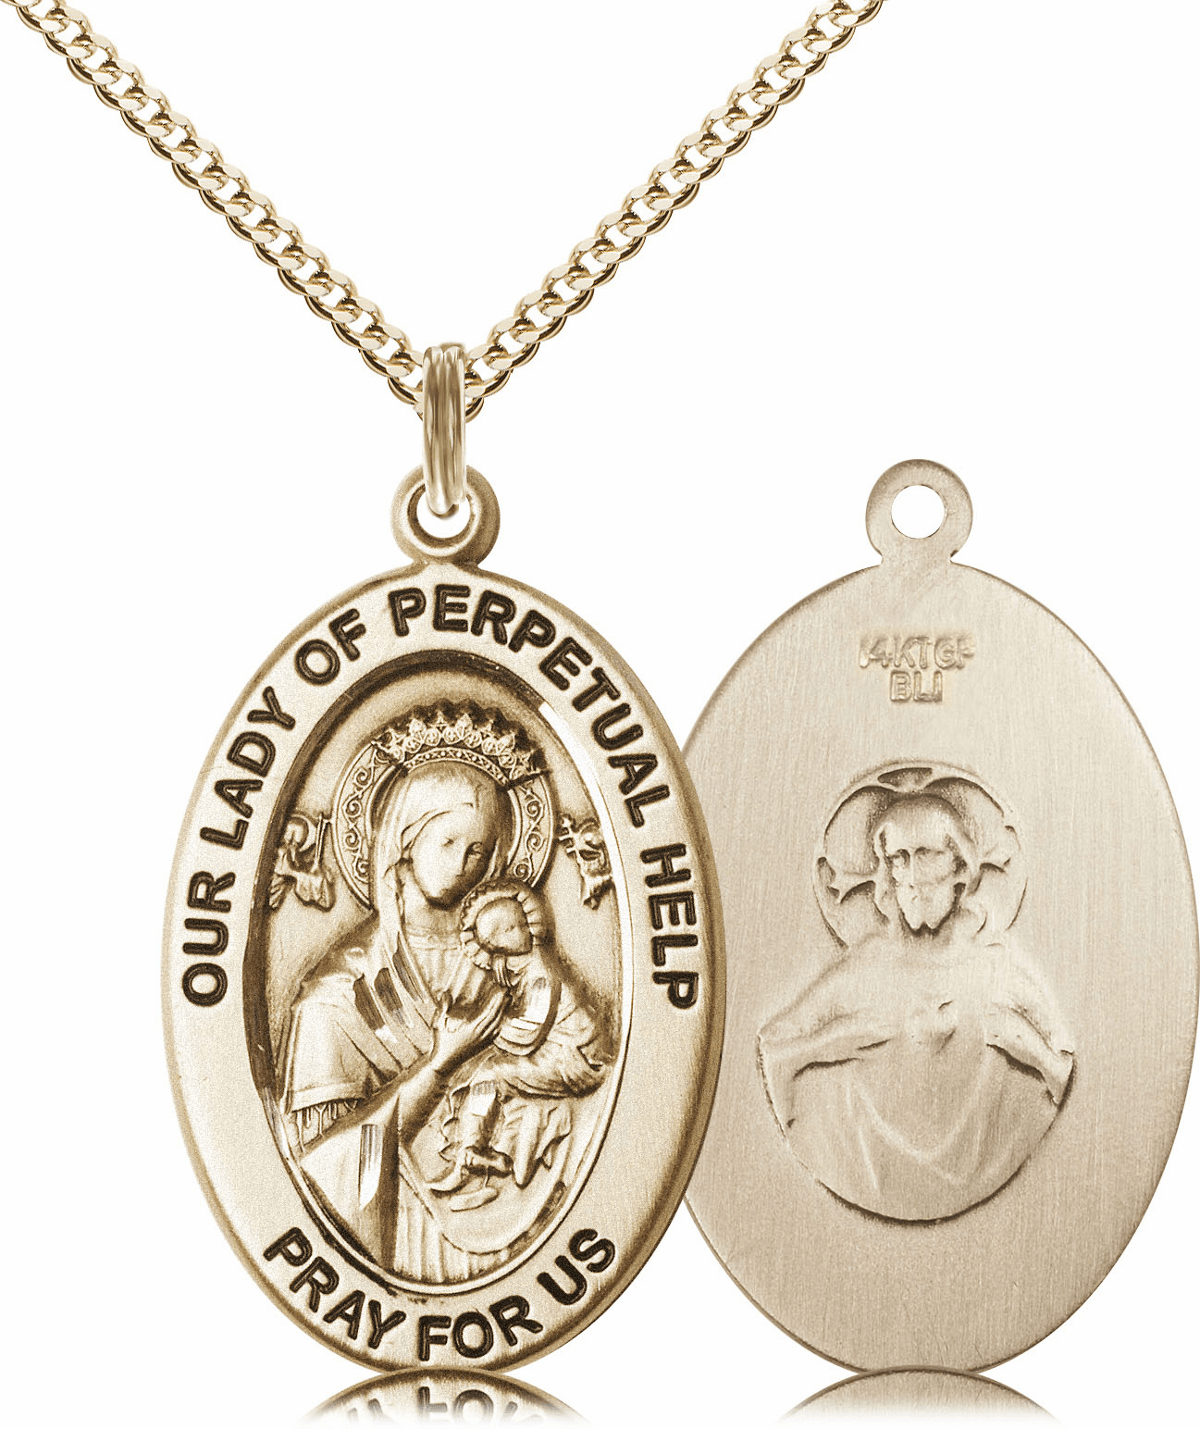 Bliss Mfg Our Lady of Perpetual Help 14kt Gold-filled Medal Necklace w/Chain